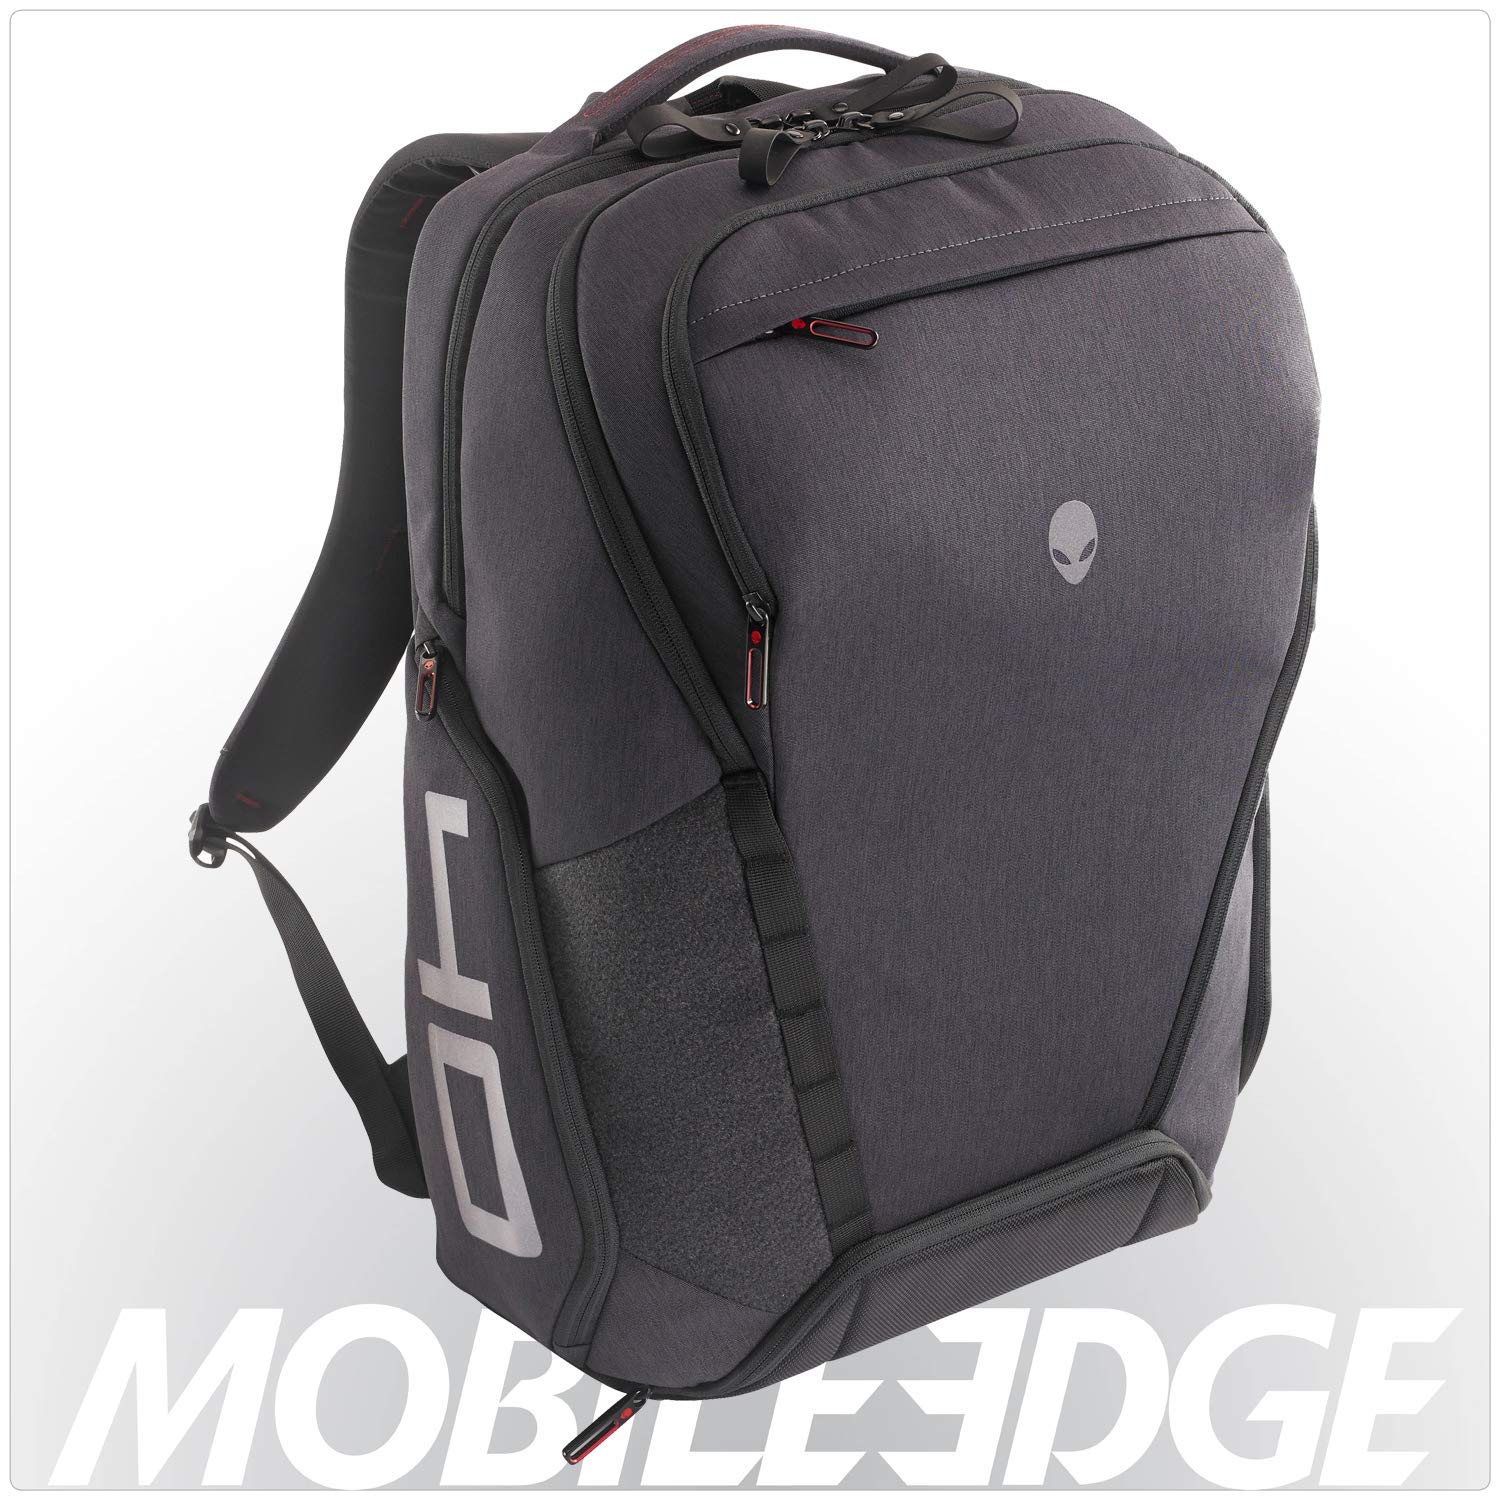 The Alienware Area-51m Elite Backpack is The Ultimate high-end Alienware tons of